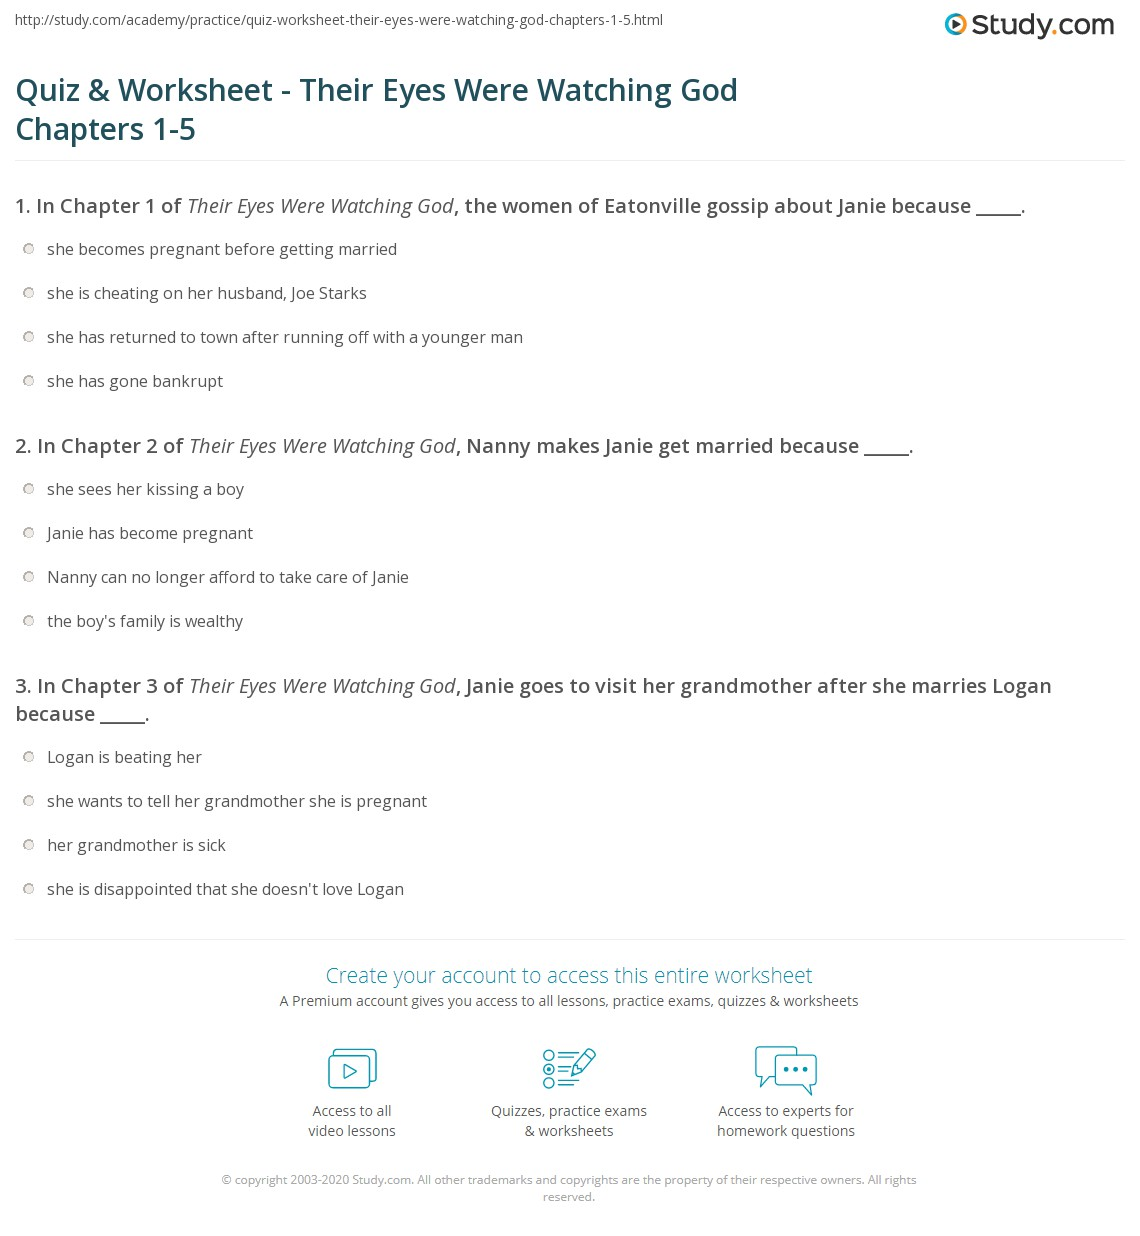 eyes were watching god essay questions The pear trees, bees, and the horizon occur in several instances in their eyes were watching god discuss the significance of these symbols and metaphors in the novel discuss the significance of these symbols and metaphors in the novel.